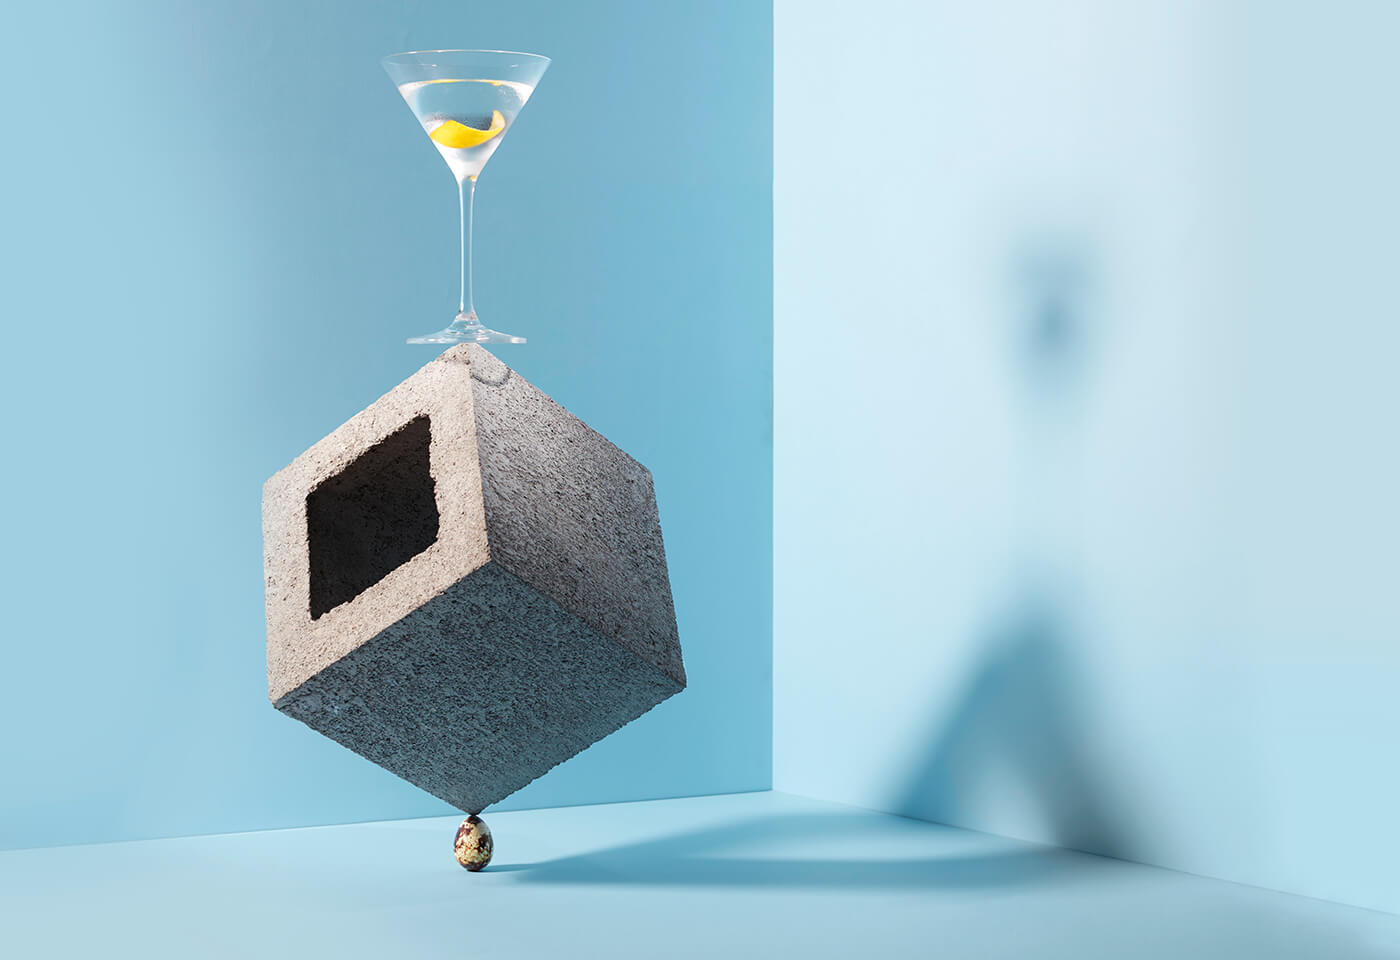 Still life image of cocktail glass balanced on concrete block by Danny Eastwood